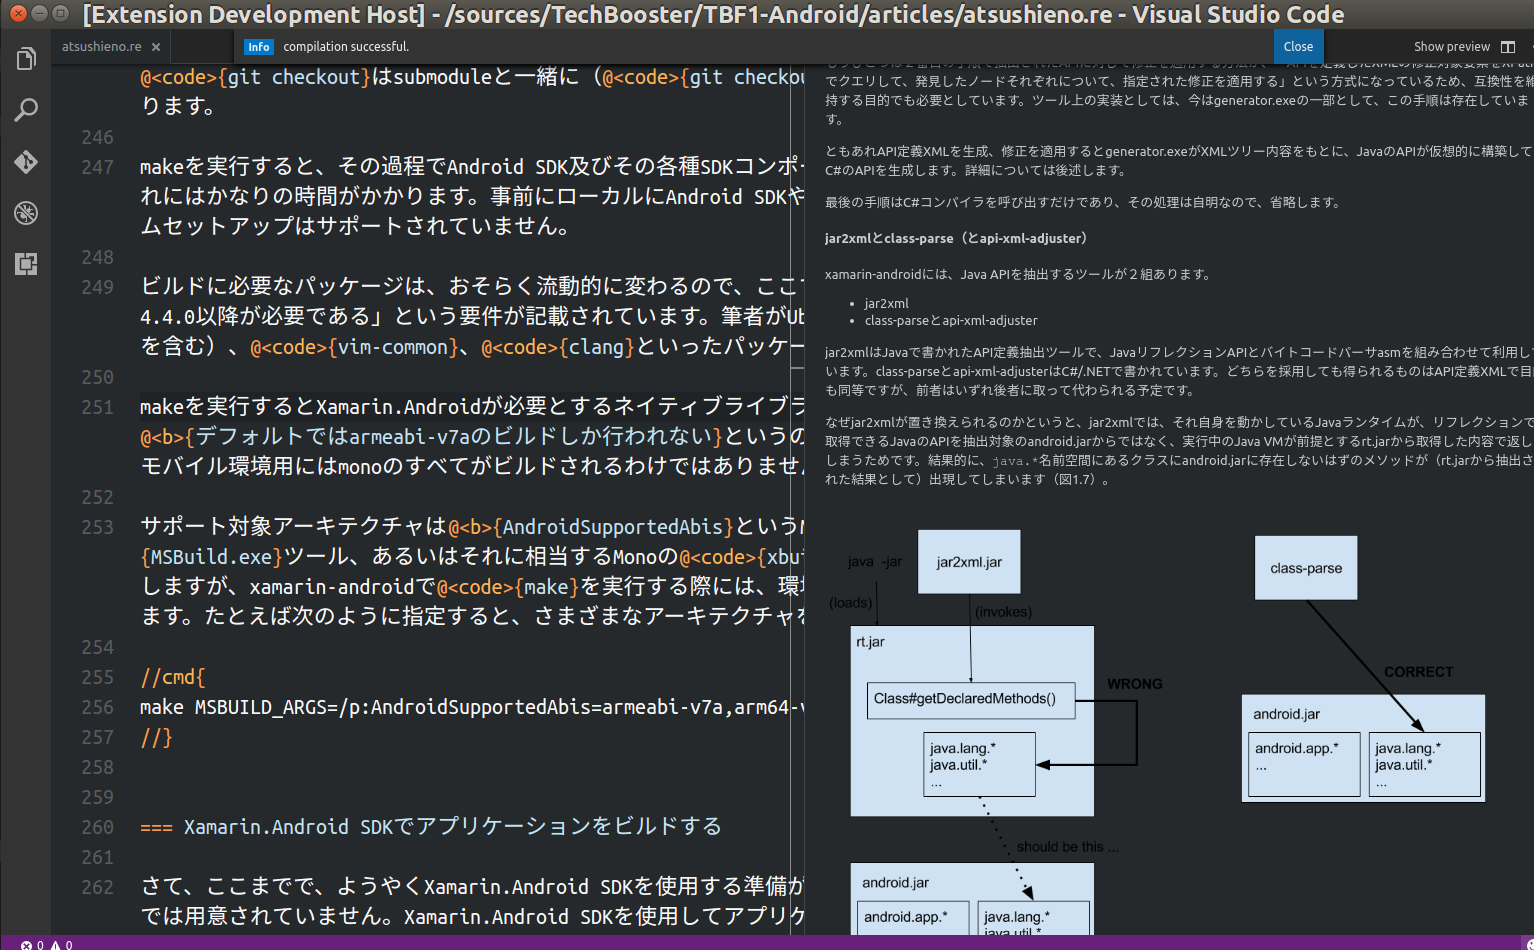 vscode-language-review in action